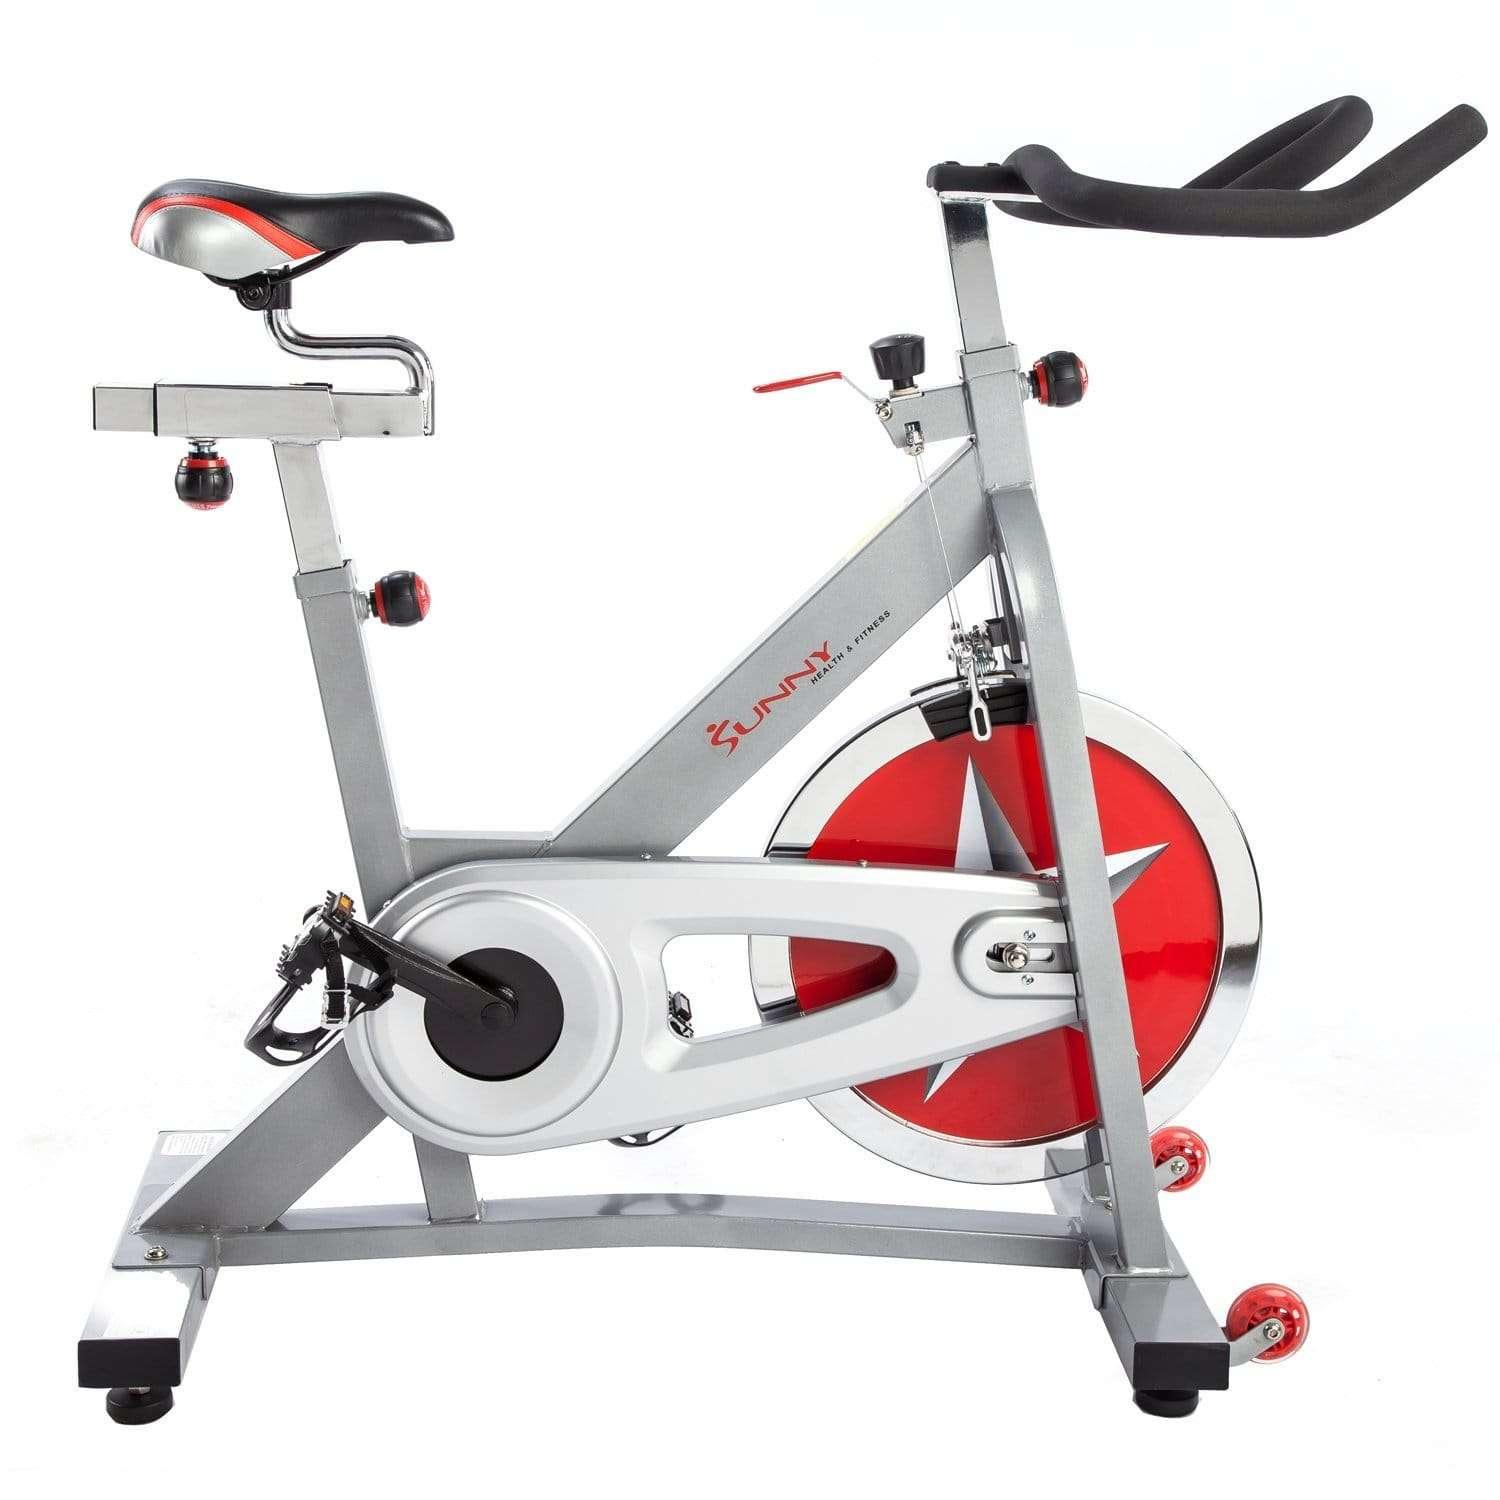 Sunny Health Amp Fitness Pro Indoor Cycling Bike Review